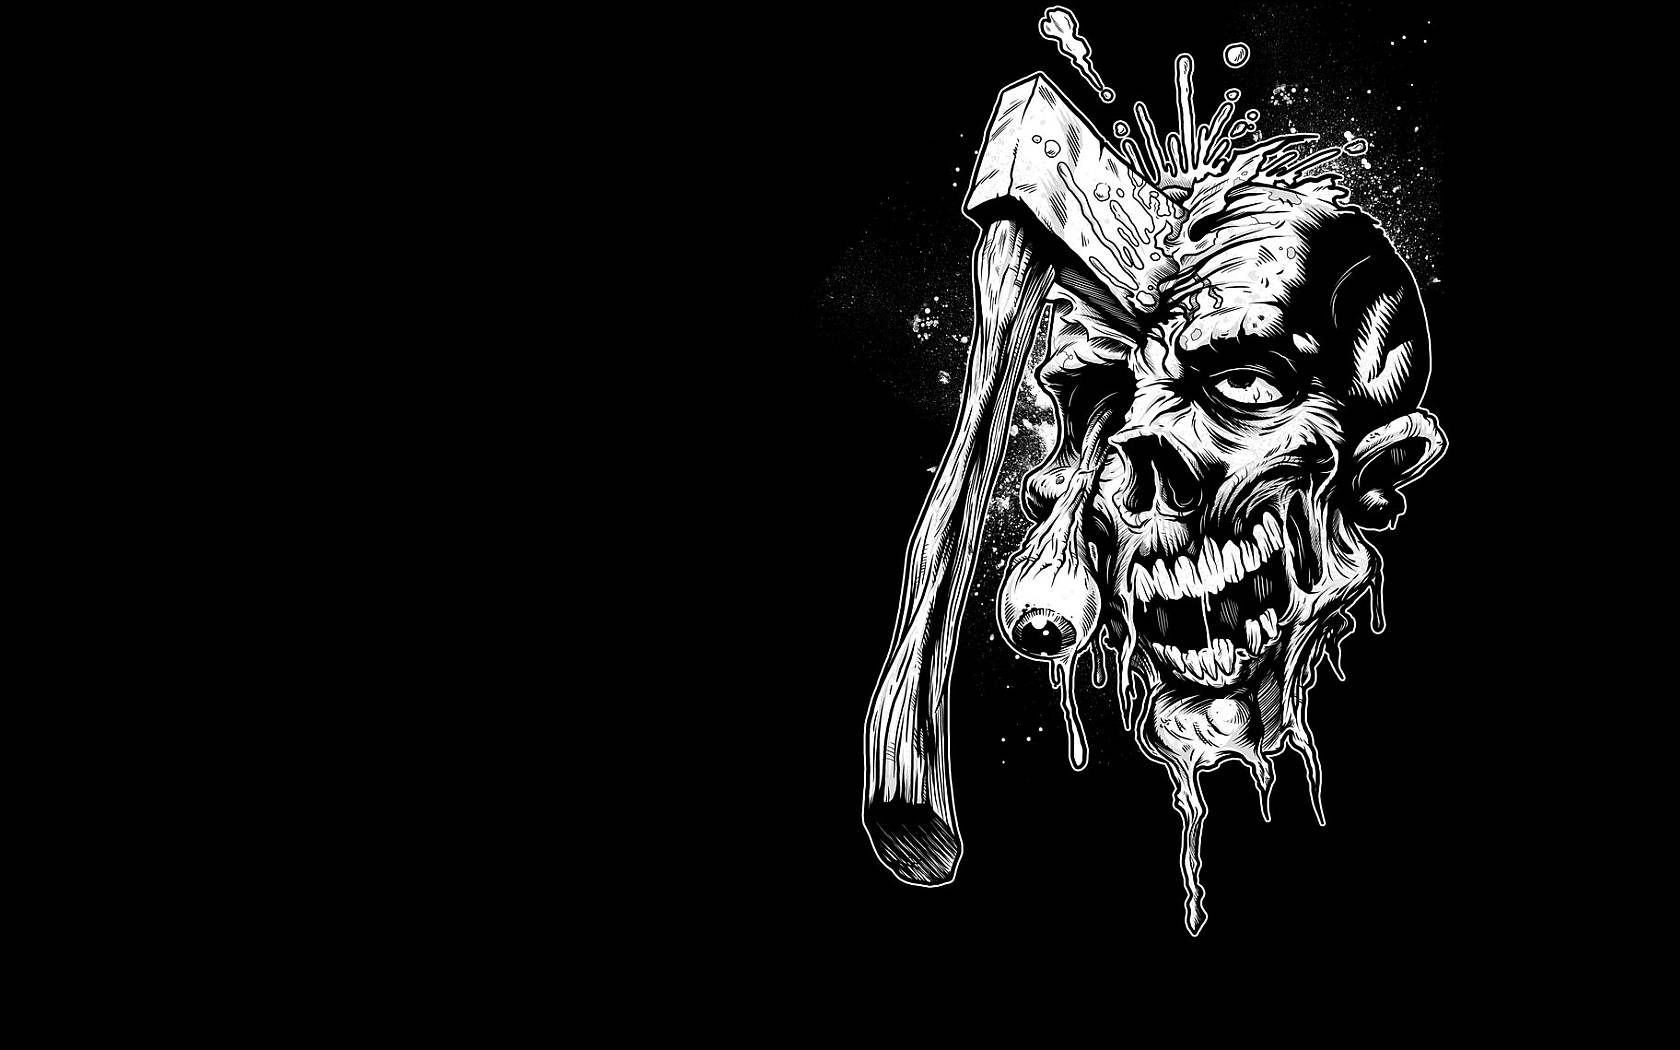 skulls skull download scary bulkupload sizes wallpapers for desktop 1680x1050